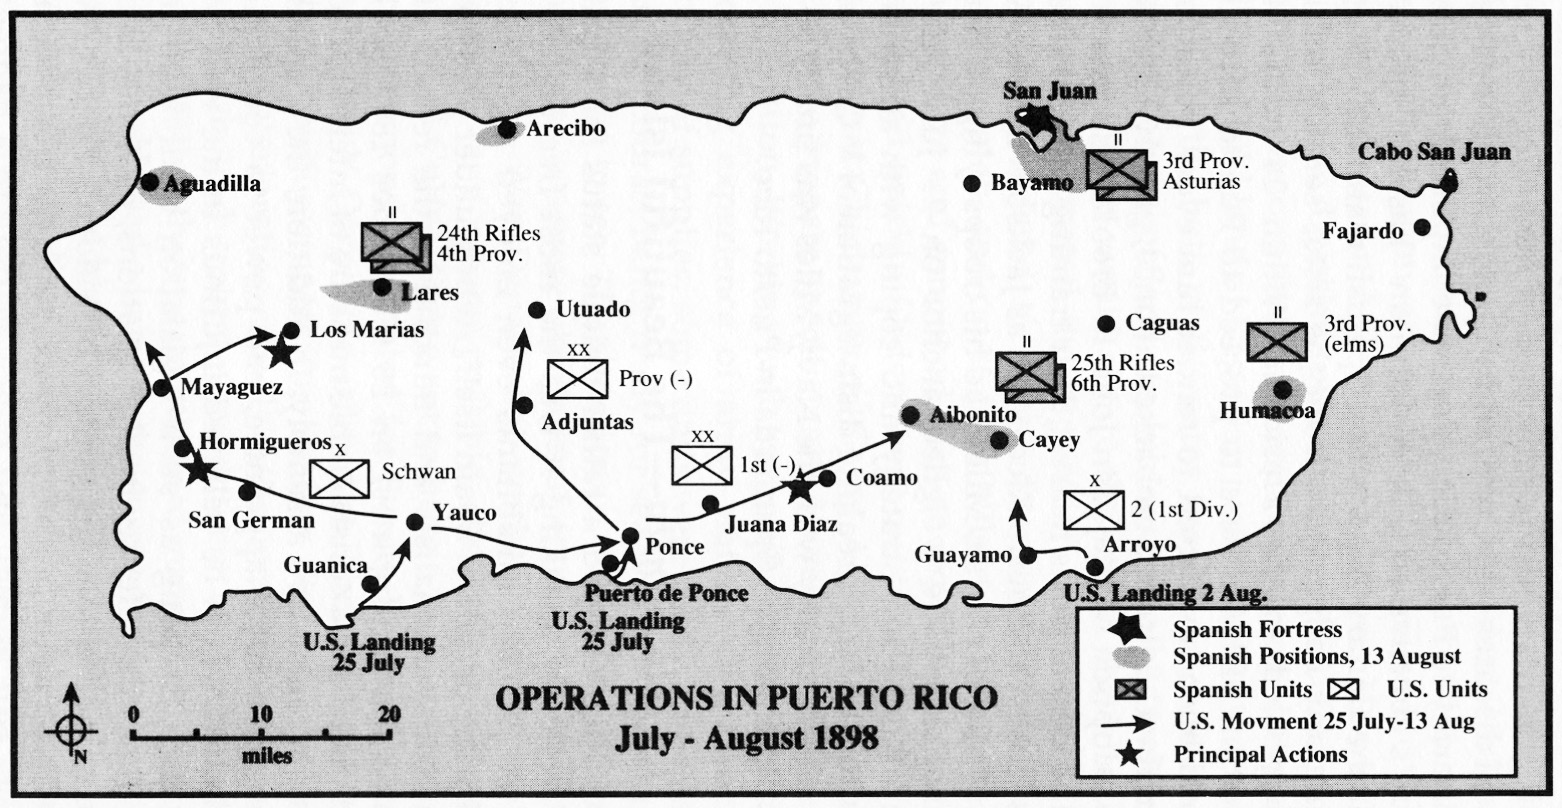 Historical Overview | WAR AGAINST ALL PUERTO RICANS